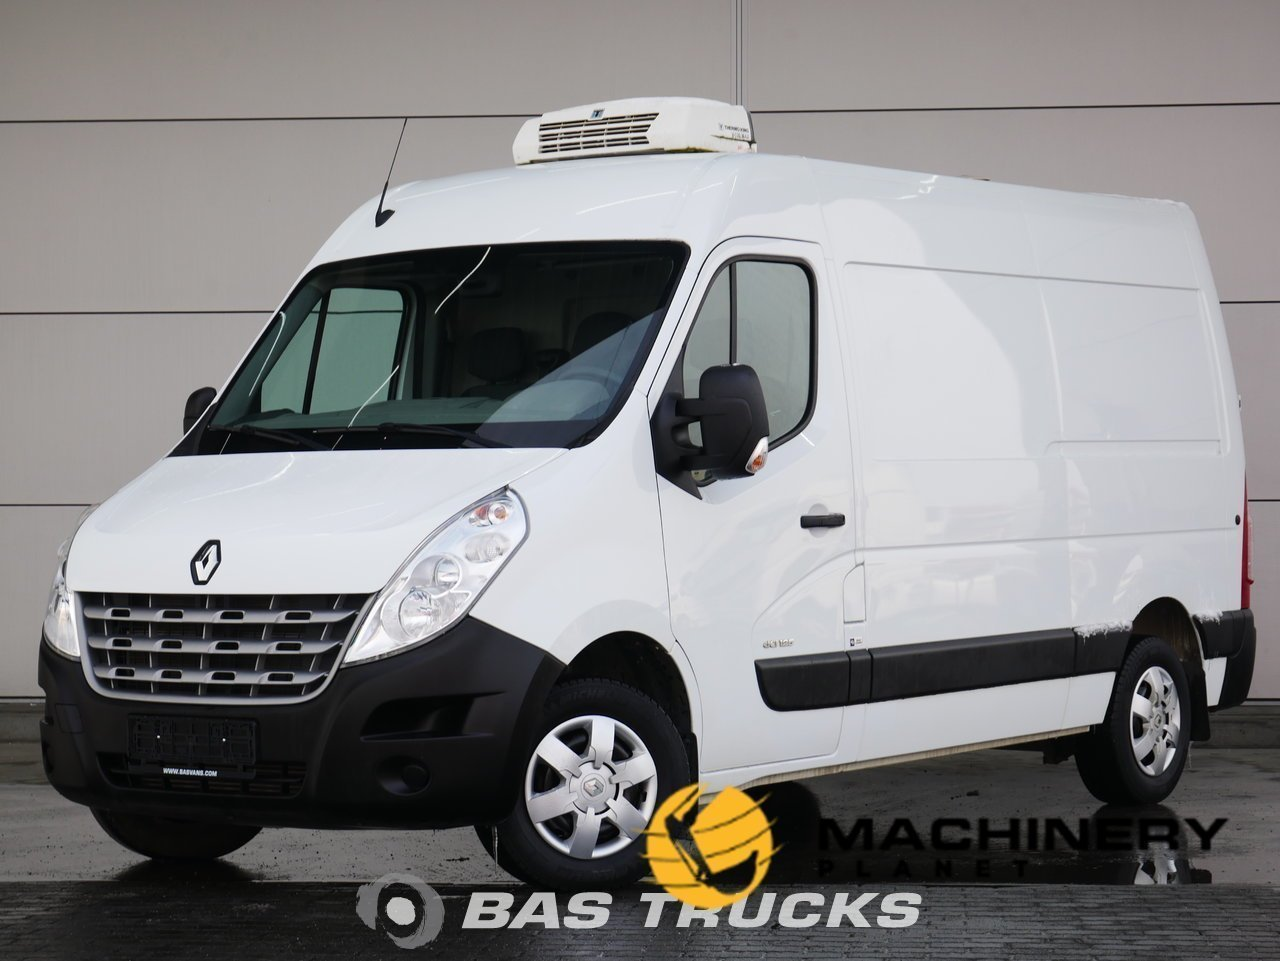 Used-Light-commercial-vehicle-Renault-Master-2013_146040_1-1554201930061_5ca33d4a0ecdb-1.jpg